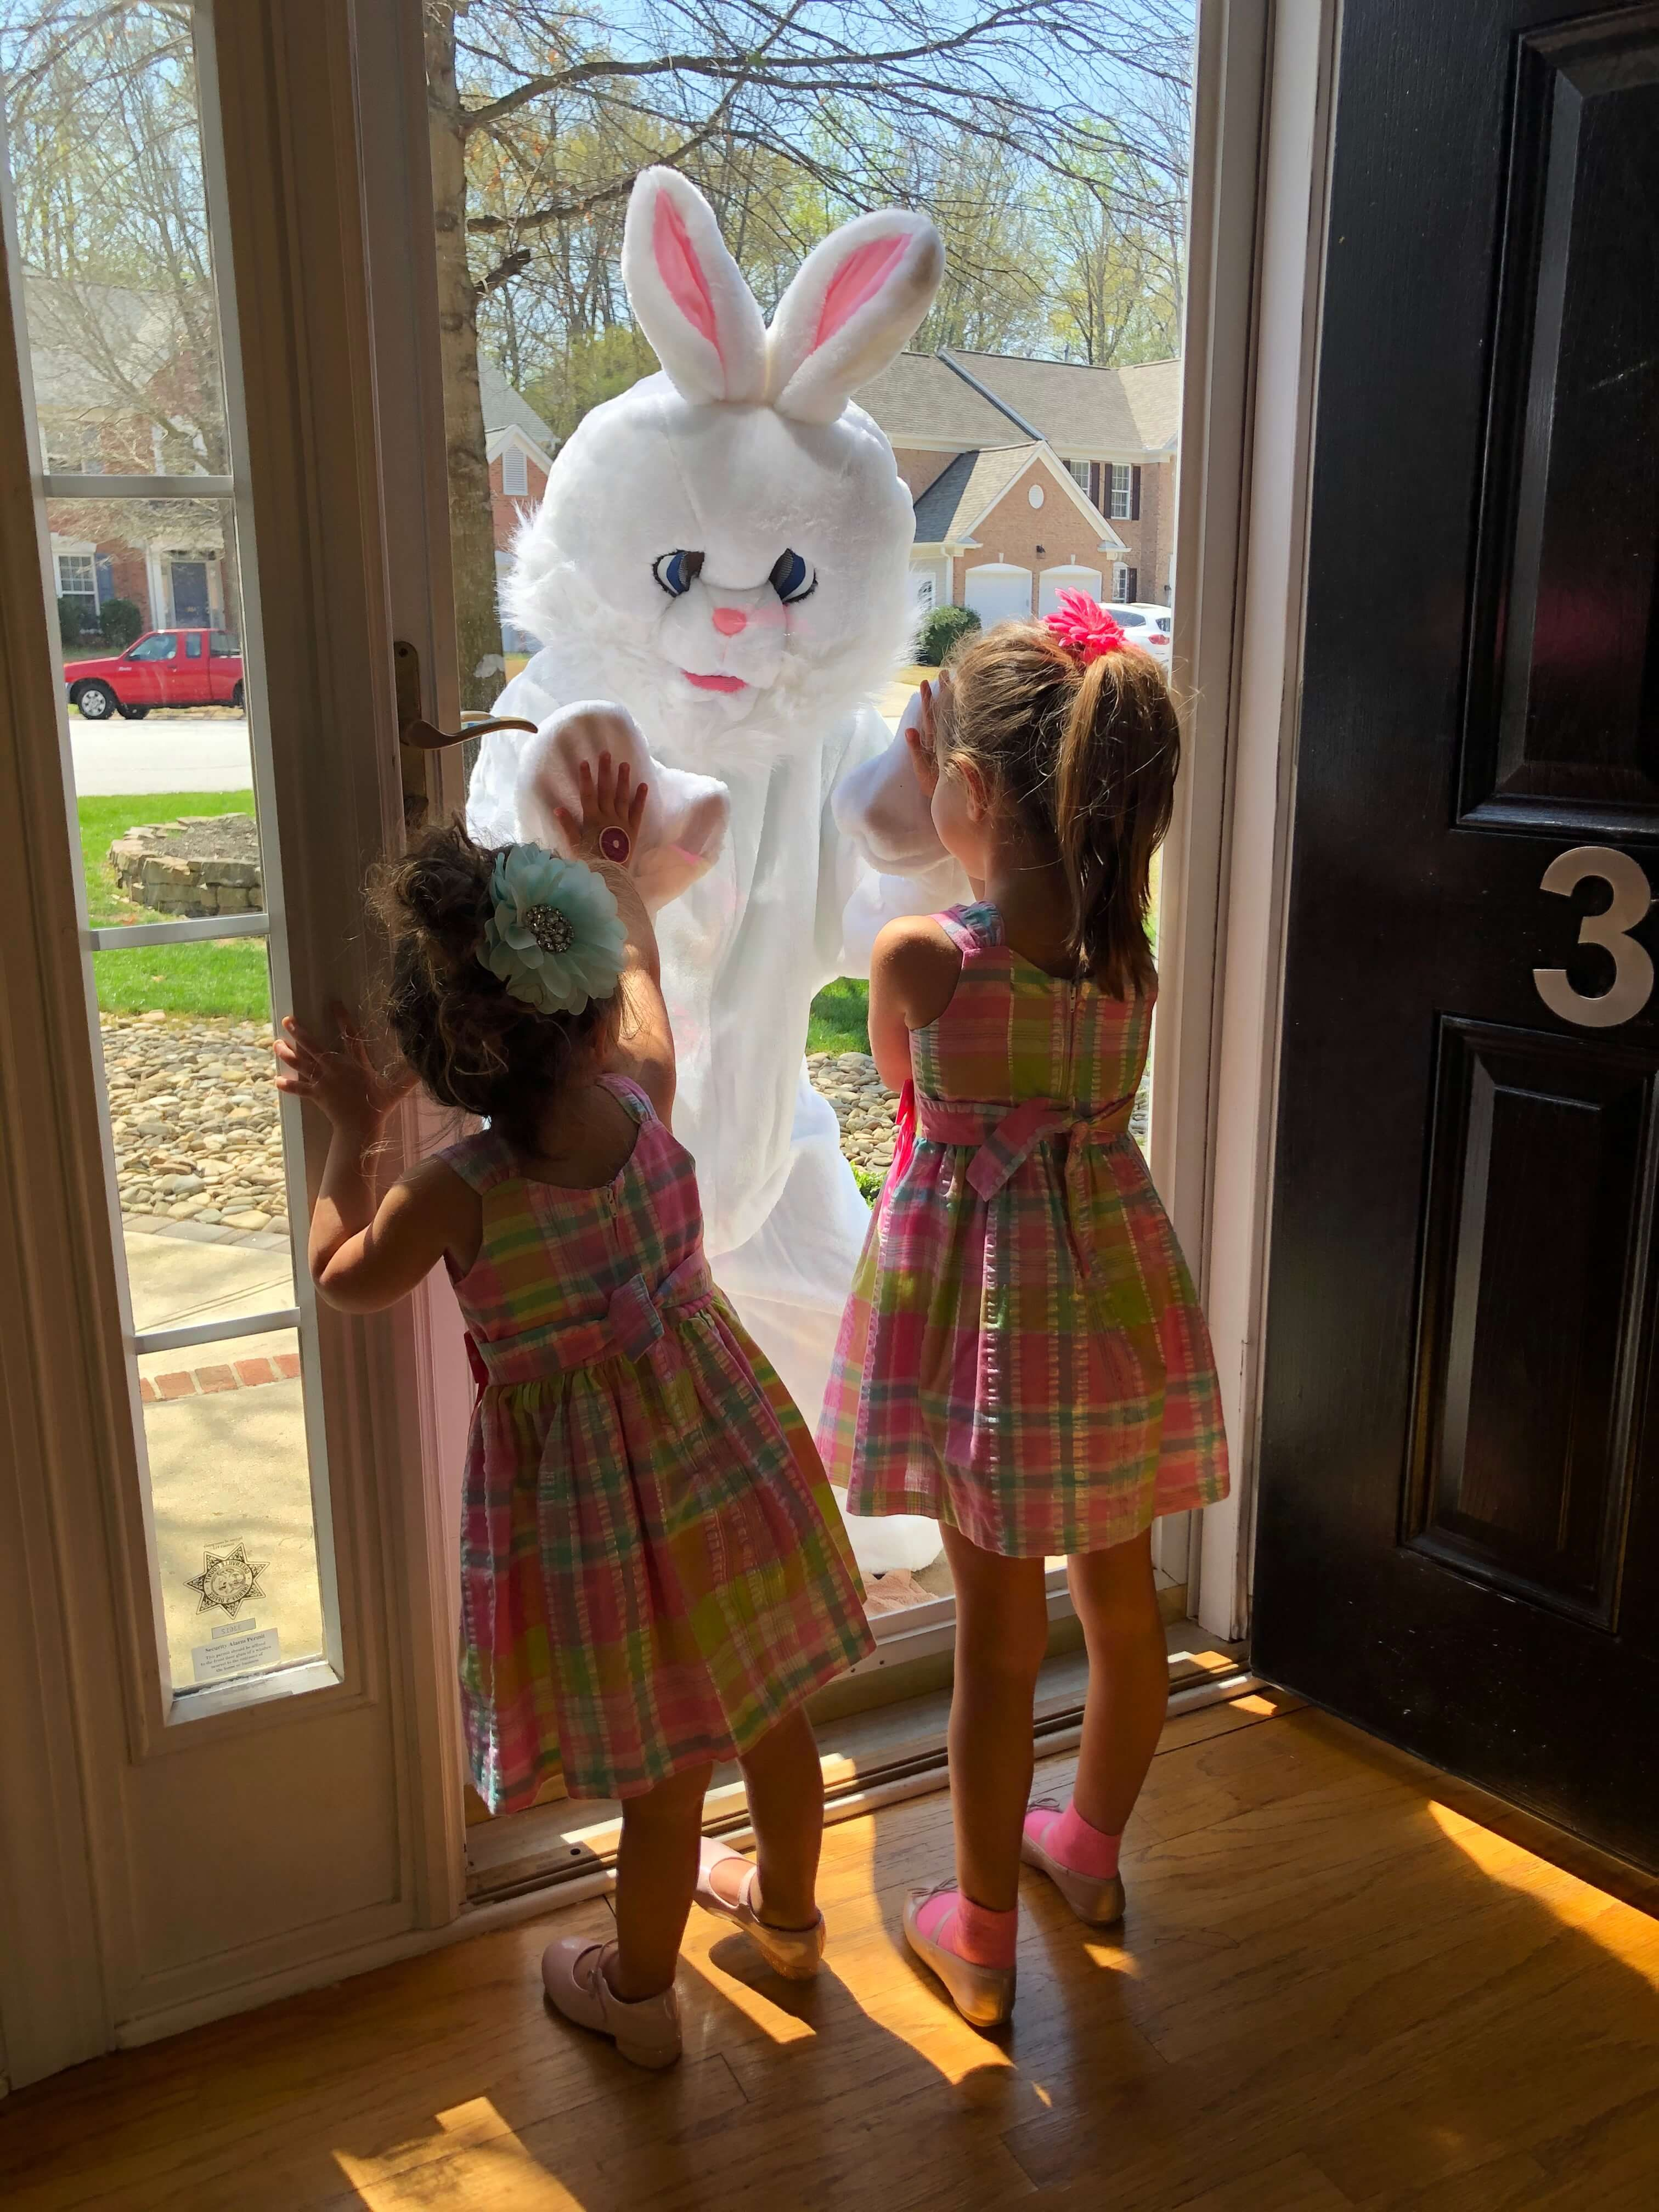 Easter bunny visiting two little girls at their home on Easter